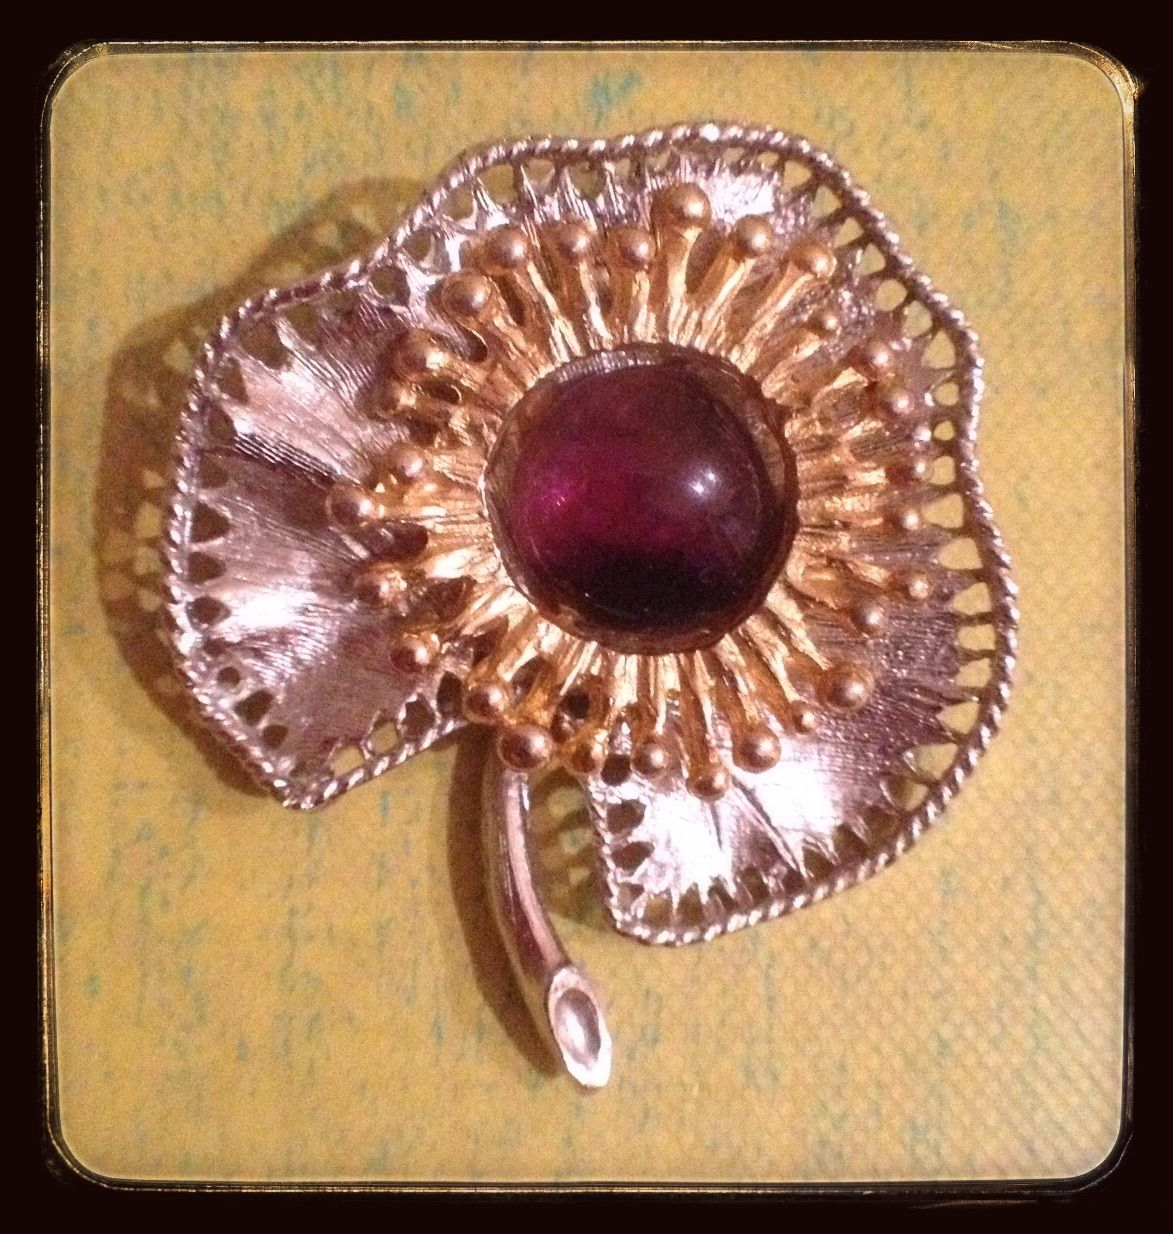 #bringbackthebrooch https://www.facebook.com/pages/The-Jewellery-Cloud/160517894095561?ref=bookmarks